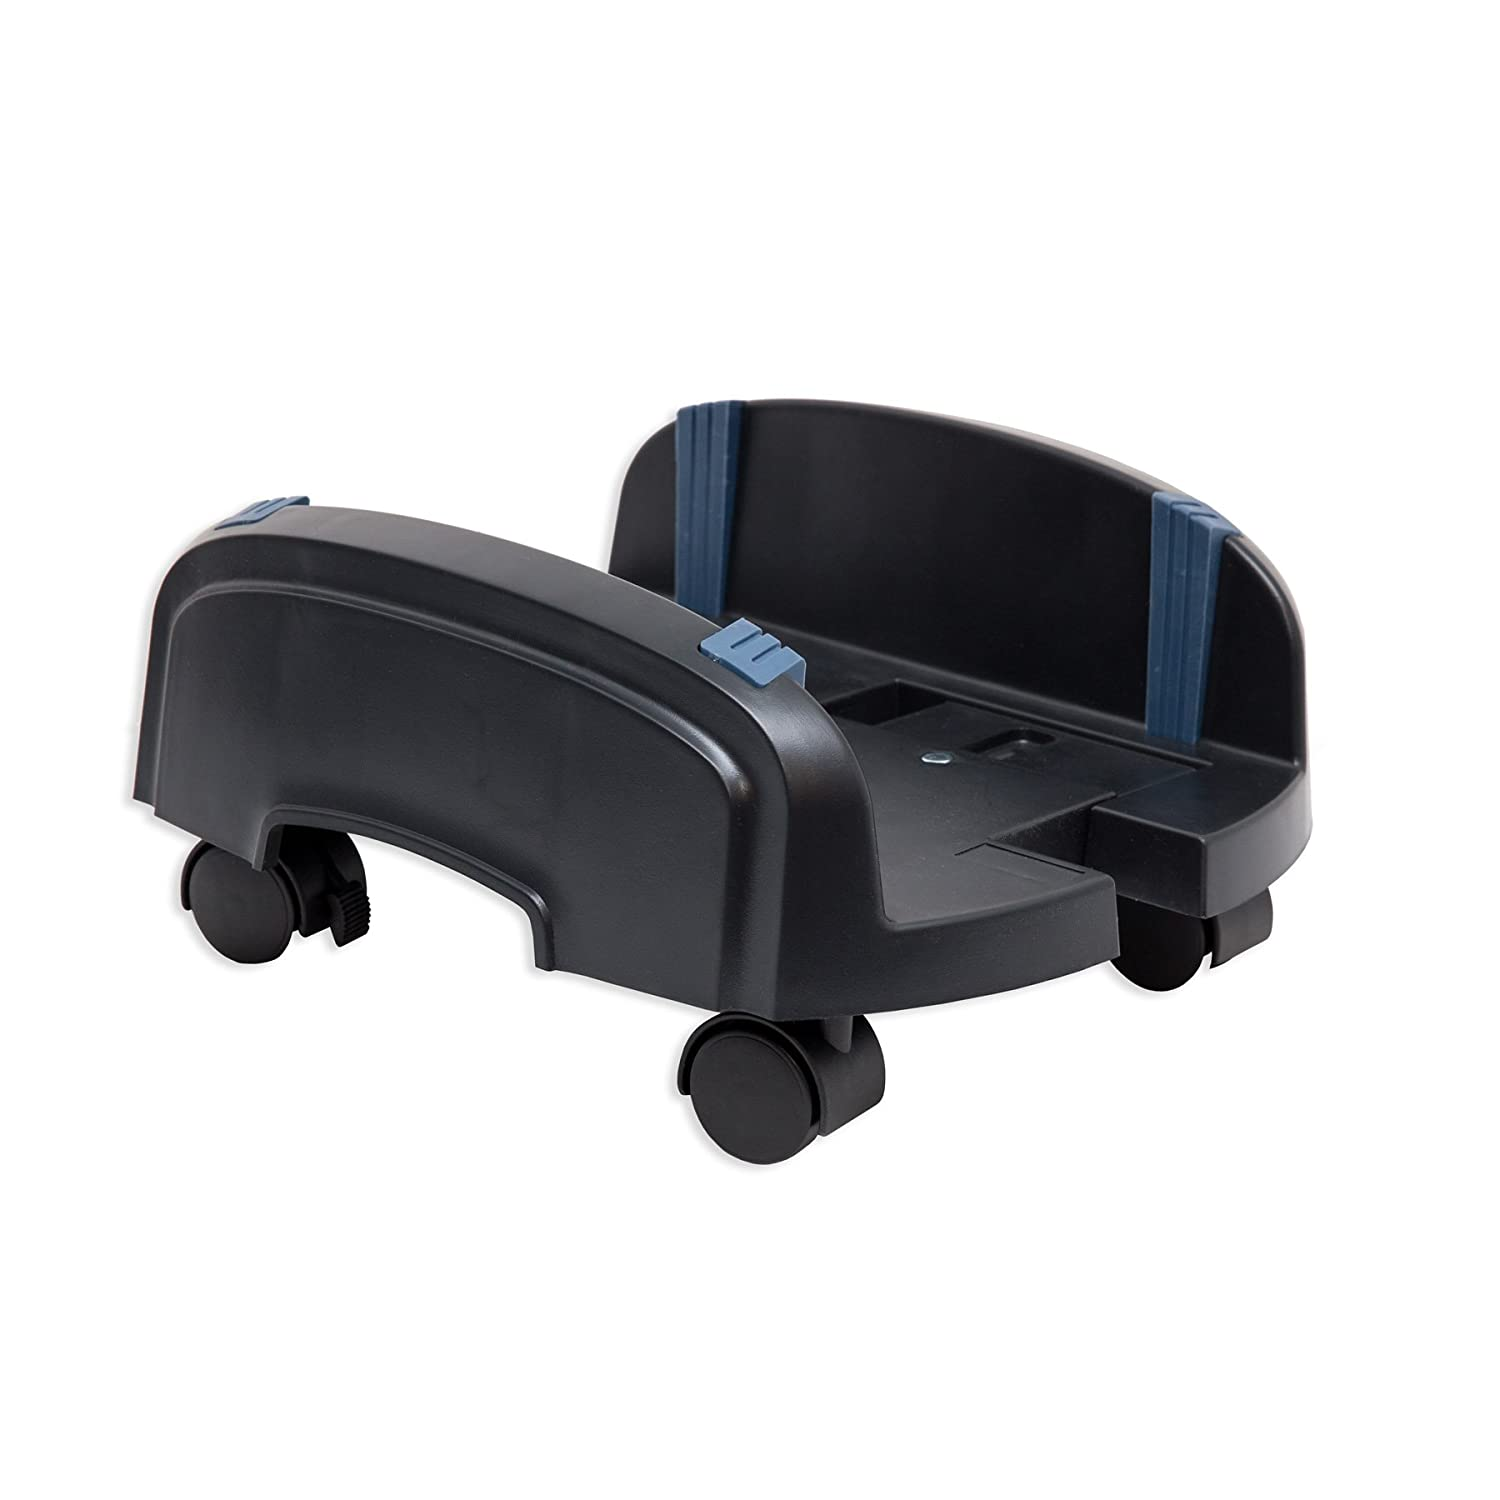 Syba Computer PC Stand for ATX Case with Adjustable Width 6 2